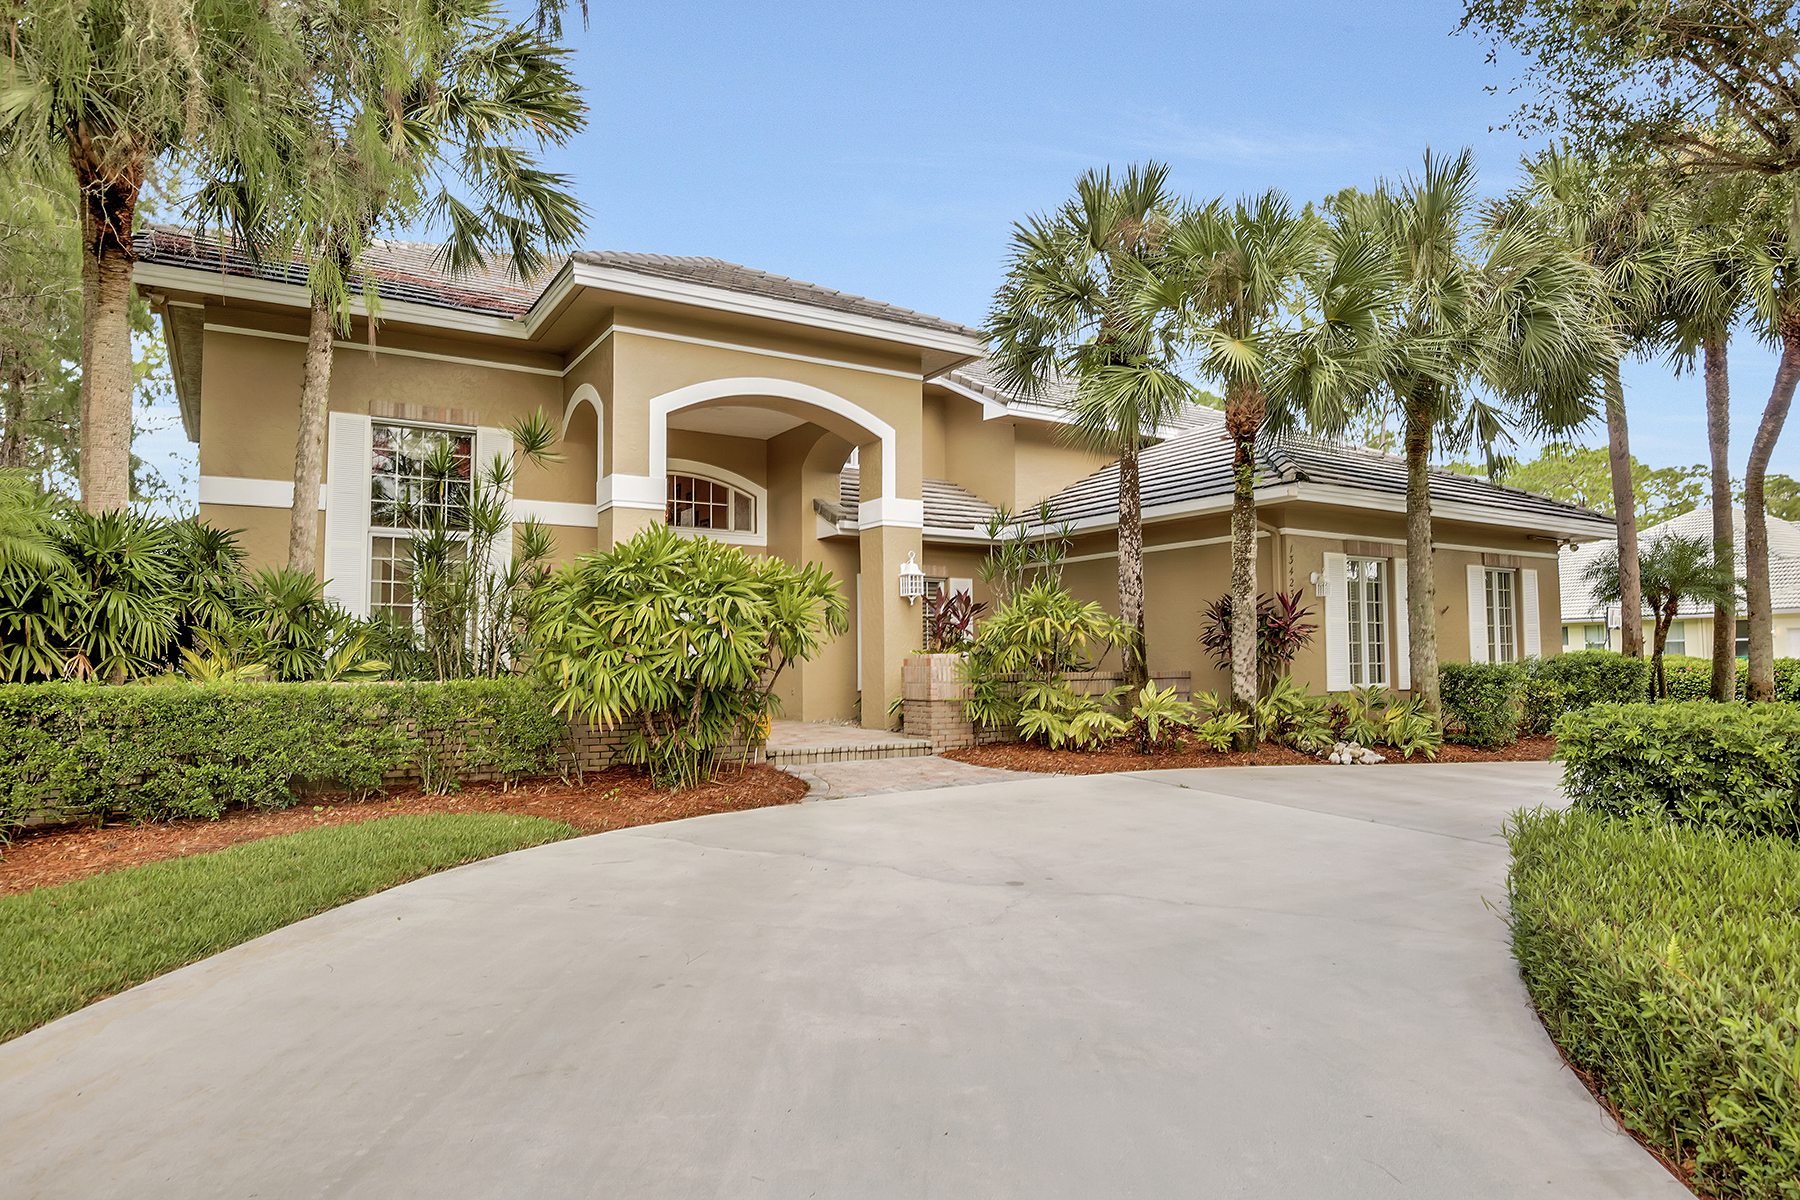 Vivienda unifamiliar por un Venta en QUAIL CREEK 13423 Pond Apple Dr E Quail Creek, Naples, Florida, 34119 Estados Unidos